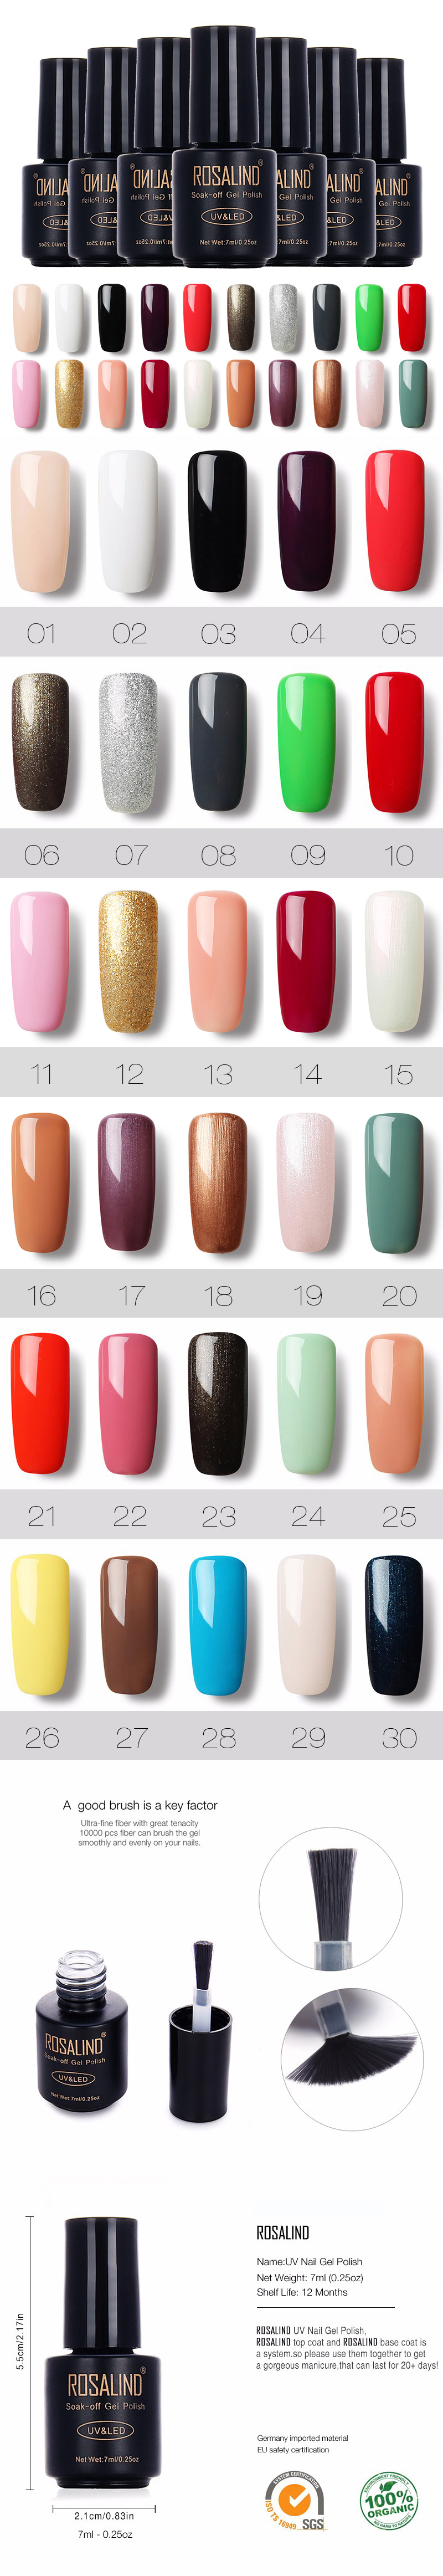 ROSALIND Nail Gel 7ml Nail Polish Gel Pure Colors DIY Nail